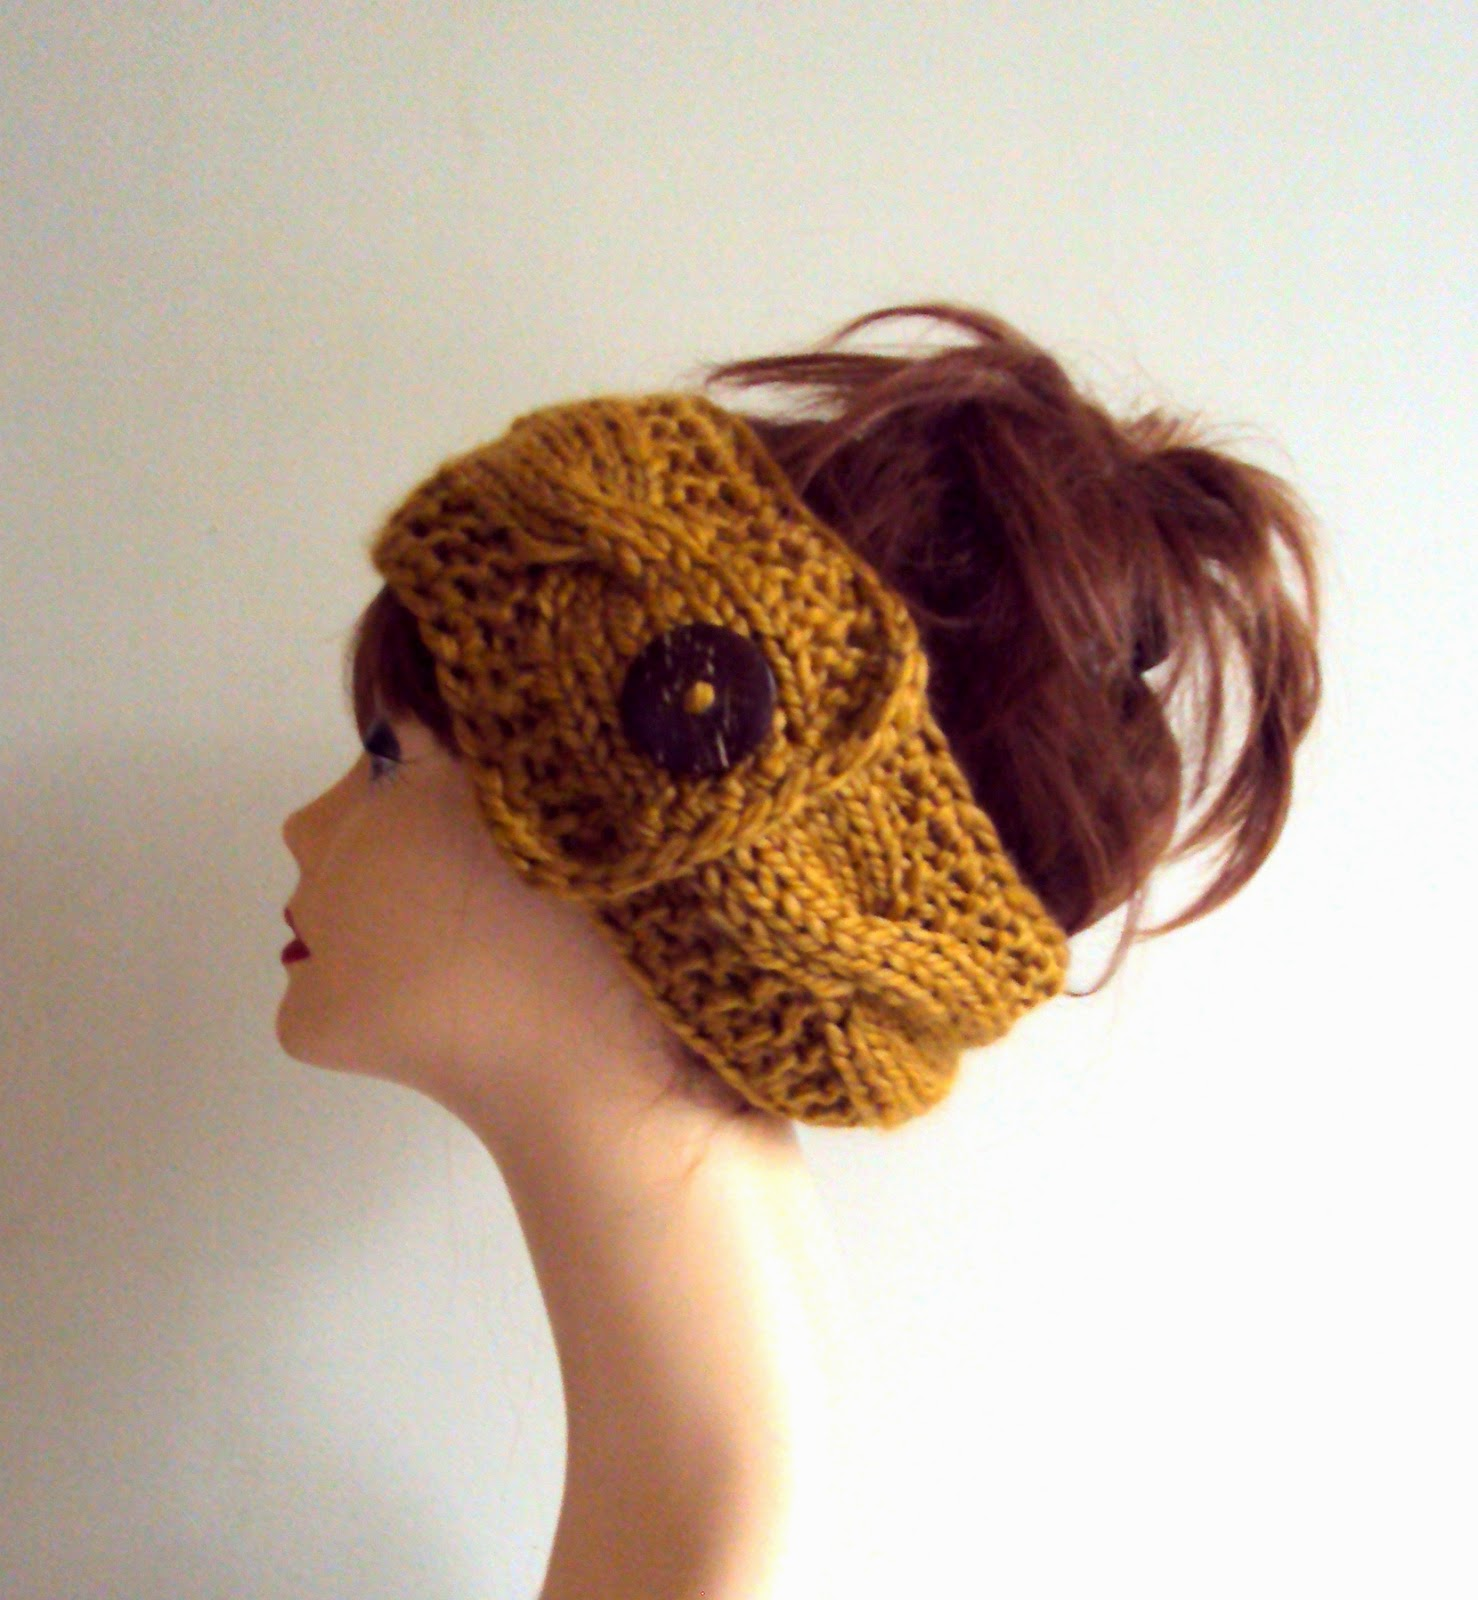 https://www.etsy.com/listing/204043855/sale-knit-earwarmer-headband-chunky-head?ref=shop_home_active_18&ga_search_query=Earwarmer